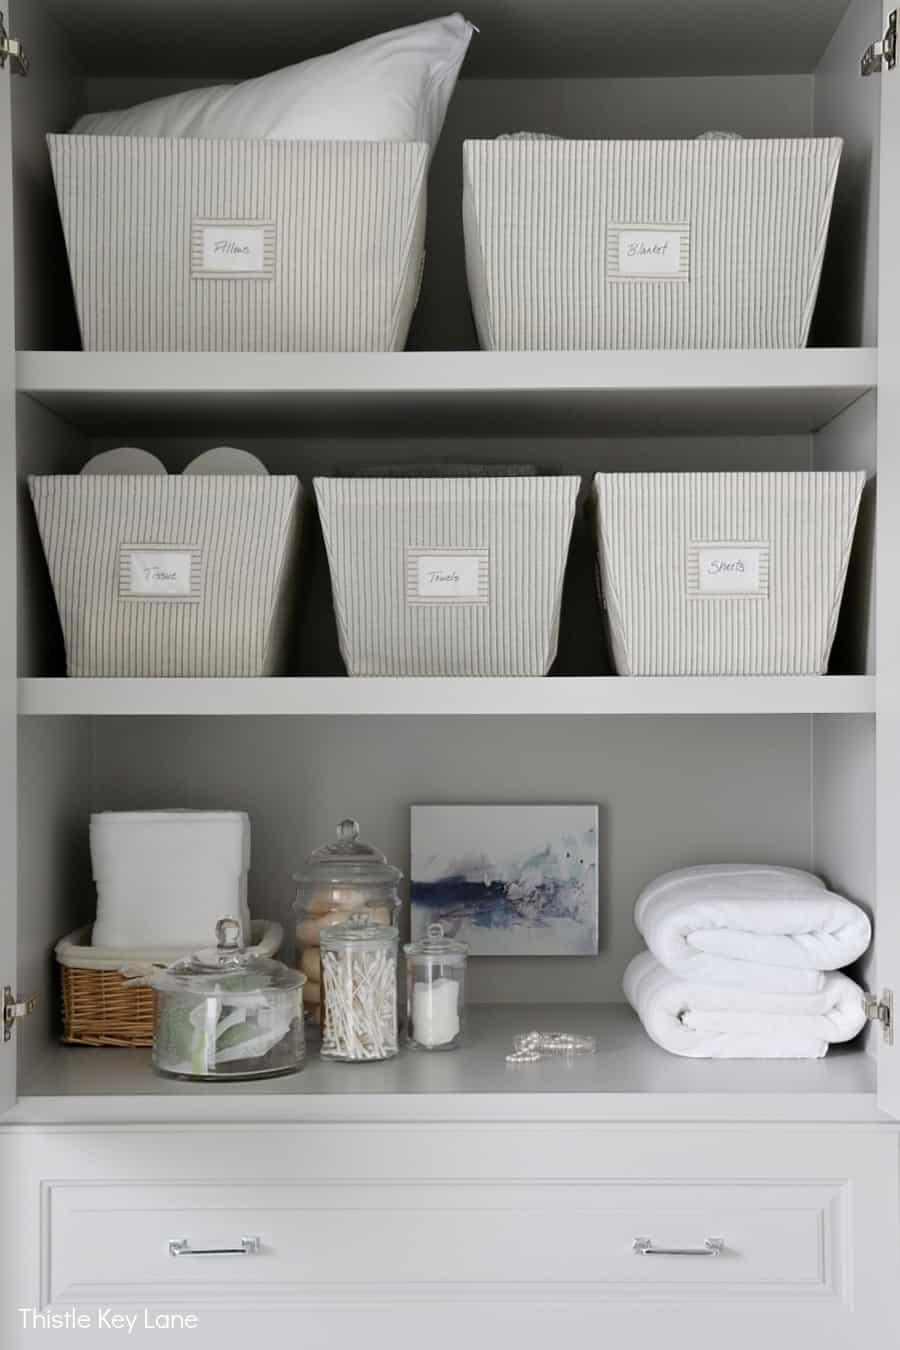 Shelves with bins and folded towels. Organizing A Master Bathroom Linen Closet.